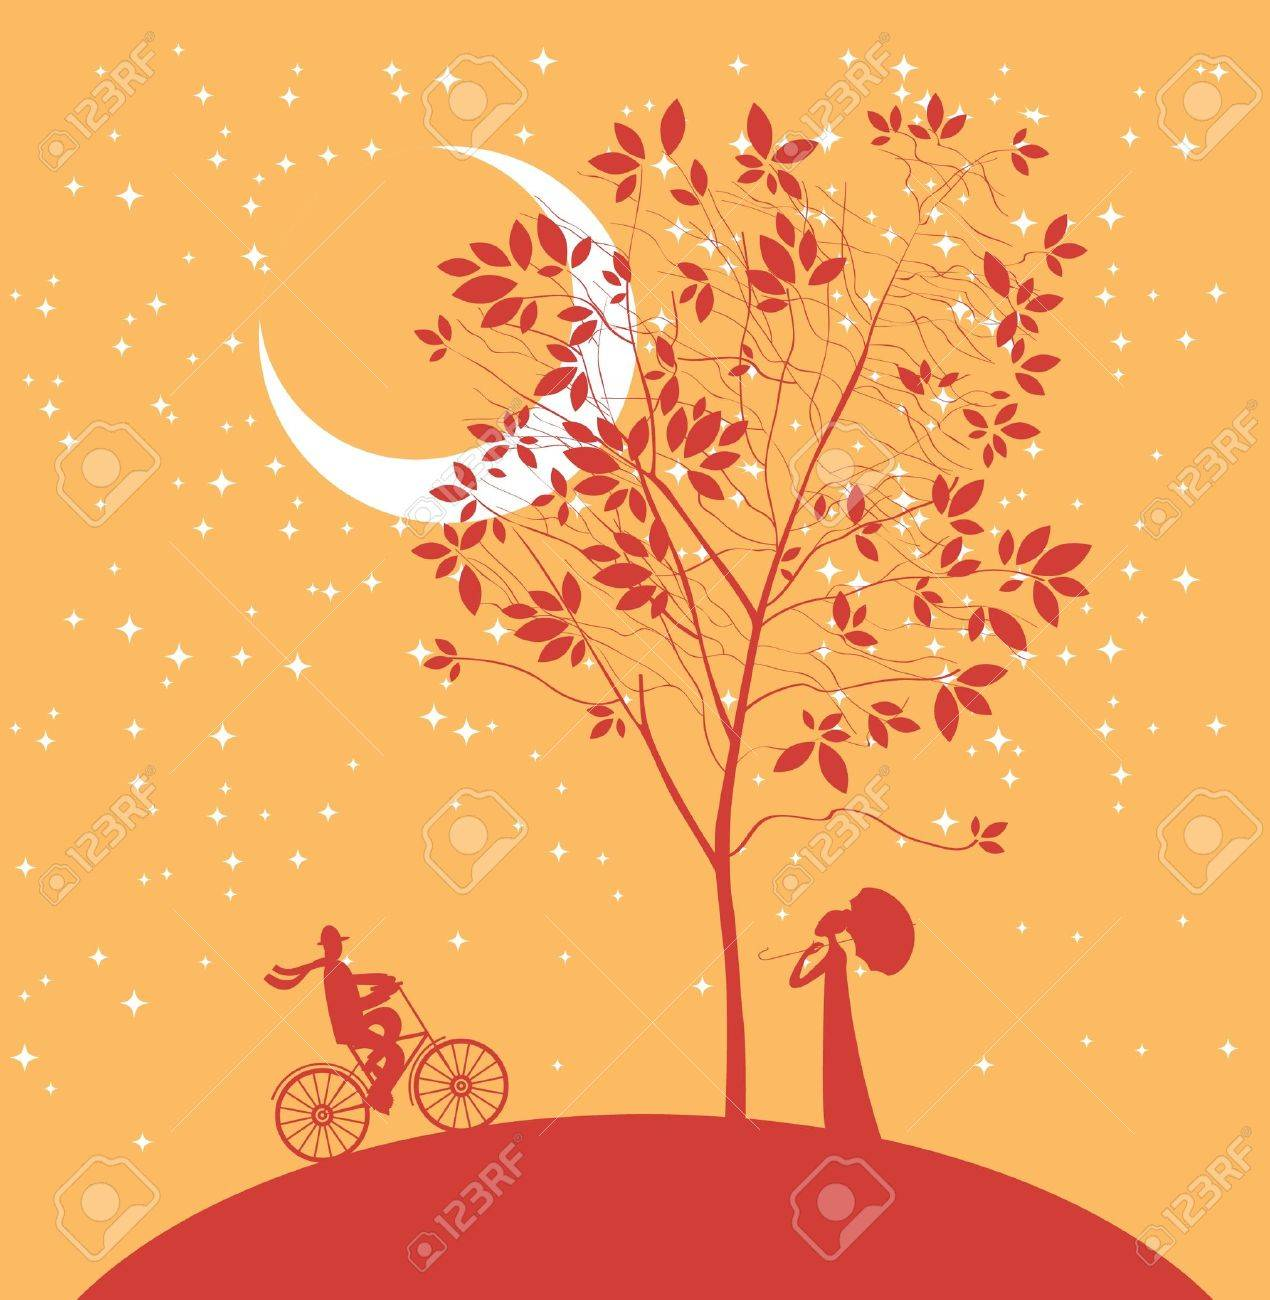 two lovers under a tree at night Stock Vector - 21960240